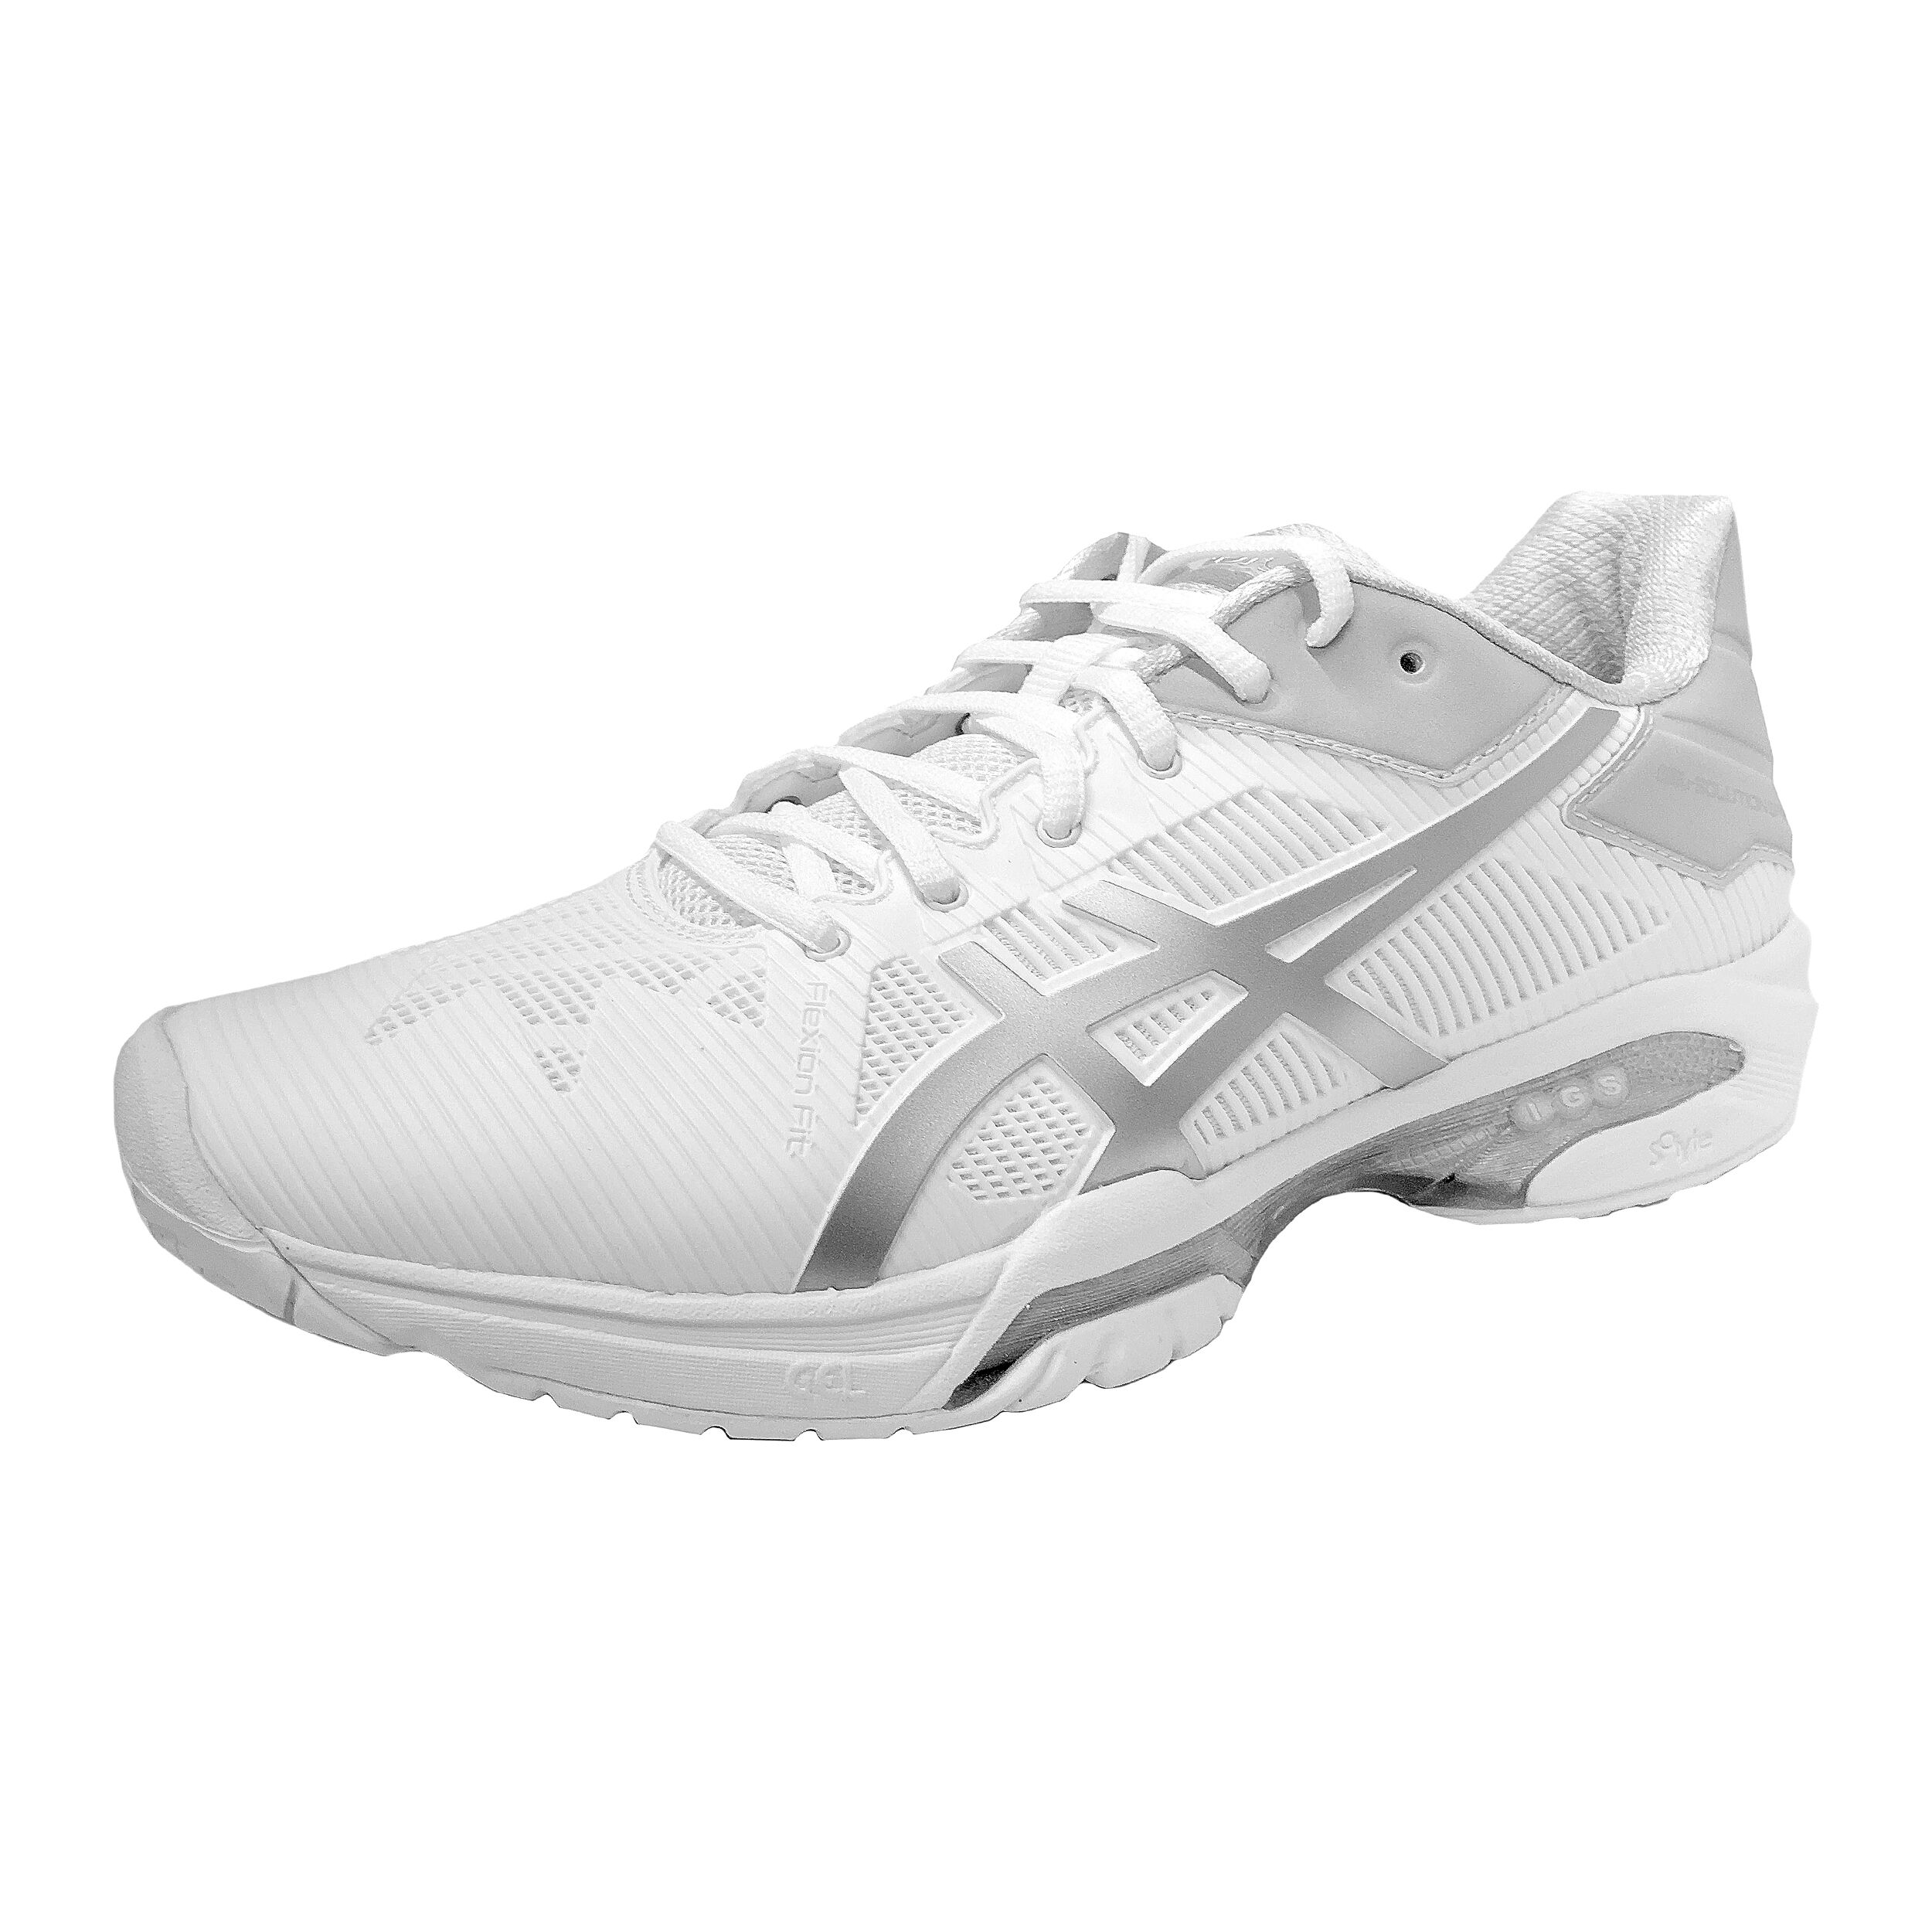 ASICS Gel Solution Speed 3 Women's Sports Shoes Adidas, PNG